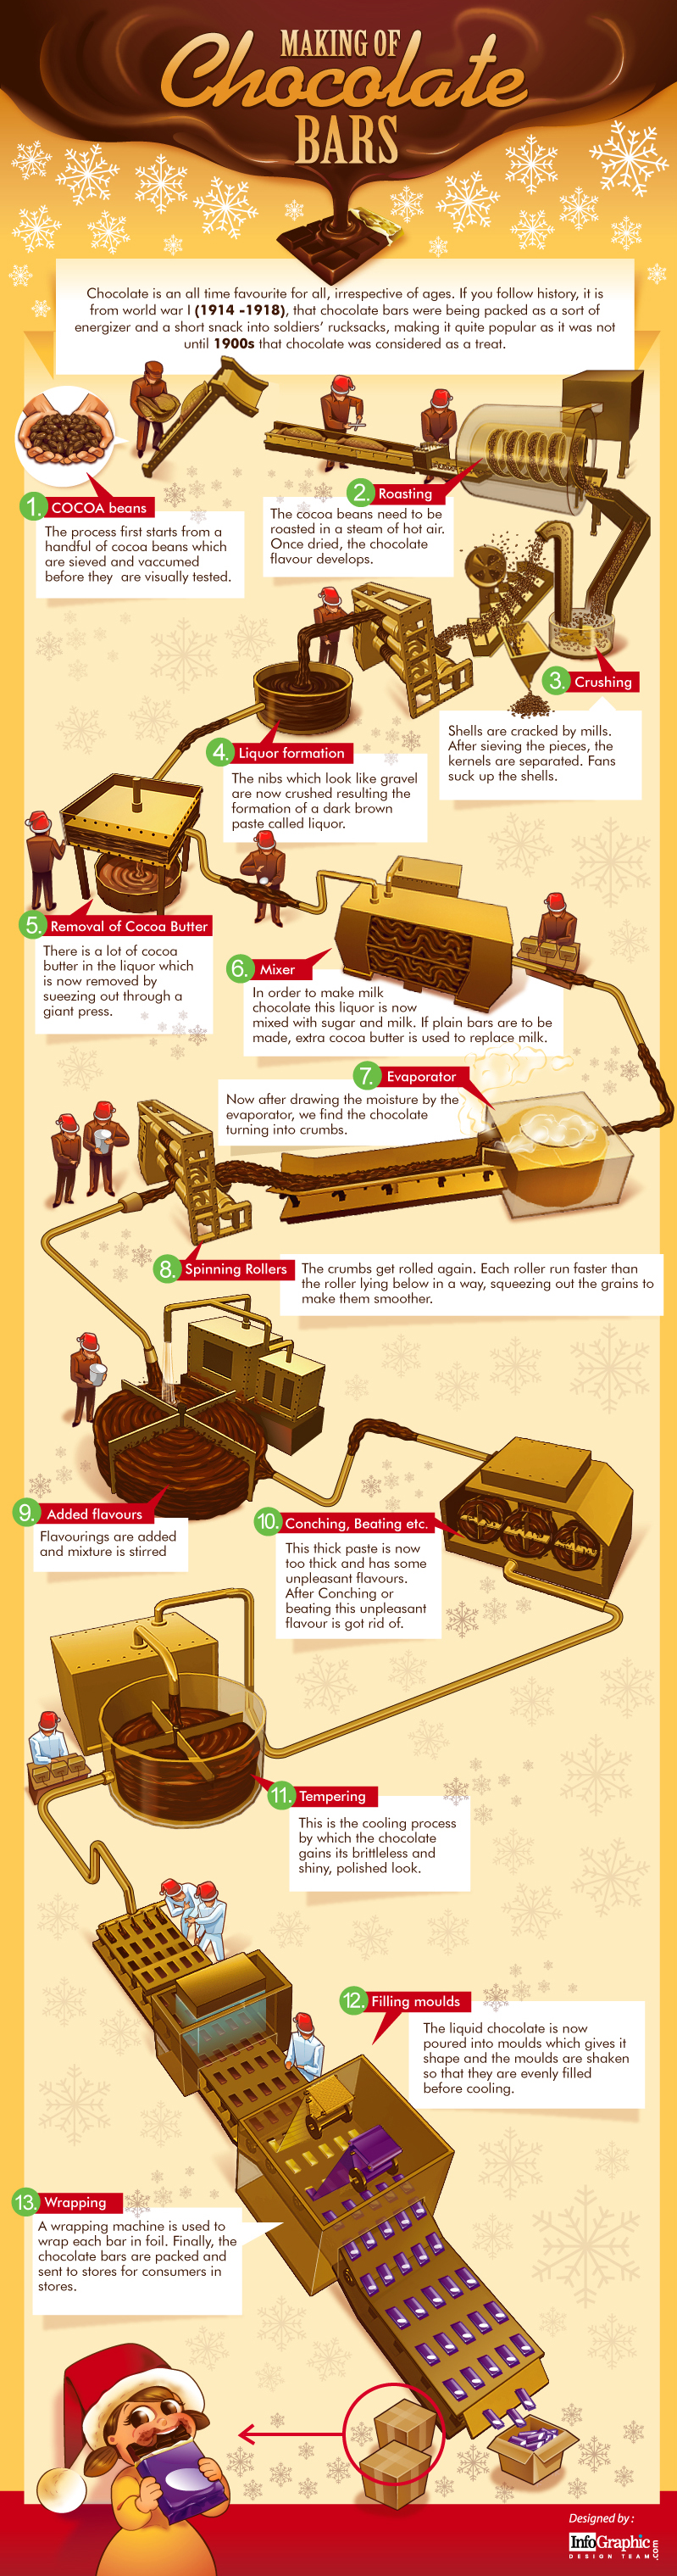 making-of-chocolate-bars-infographic